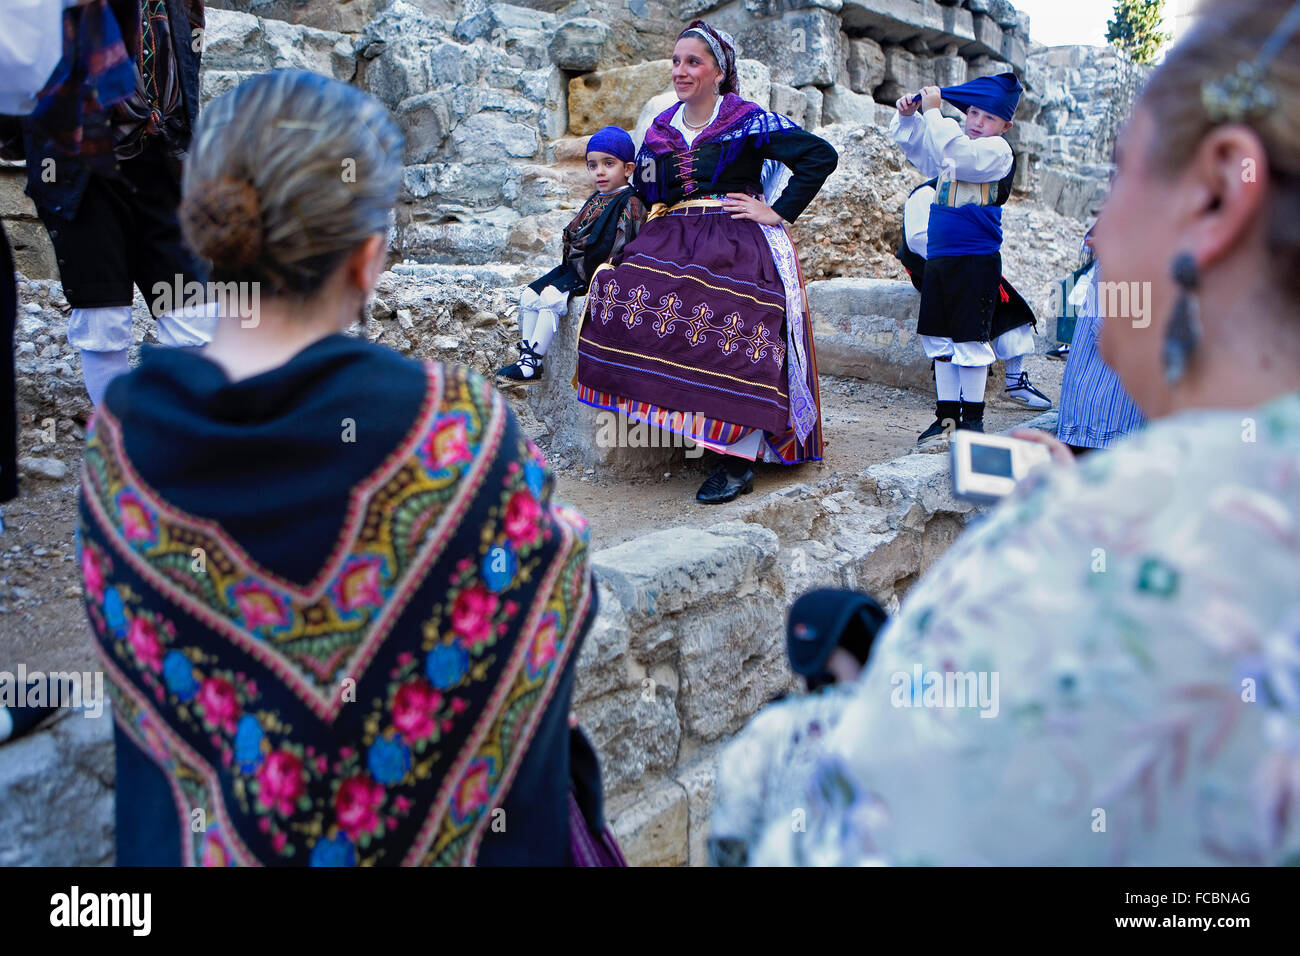 Zaragoza, Aragón, Spain: People with traditional costume on October 12 during the celebration of El Pilar in - Stock Image